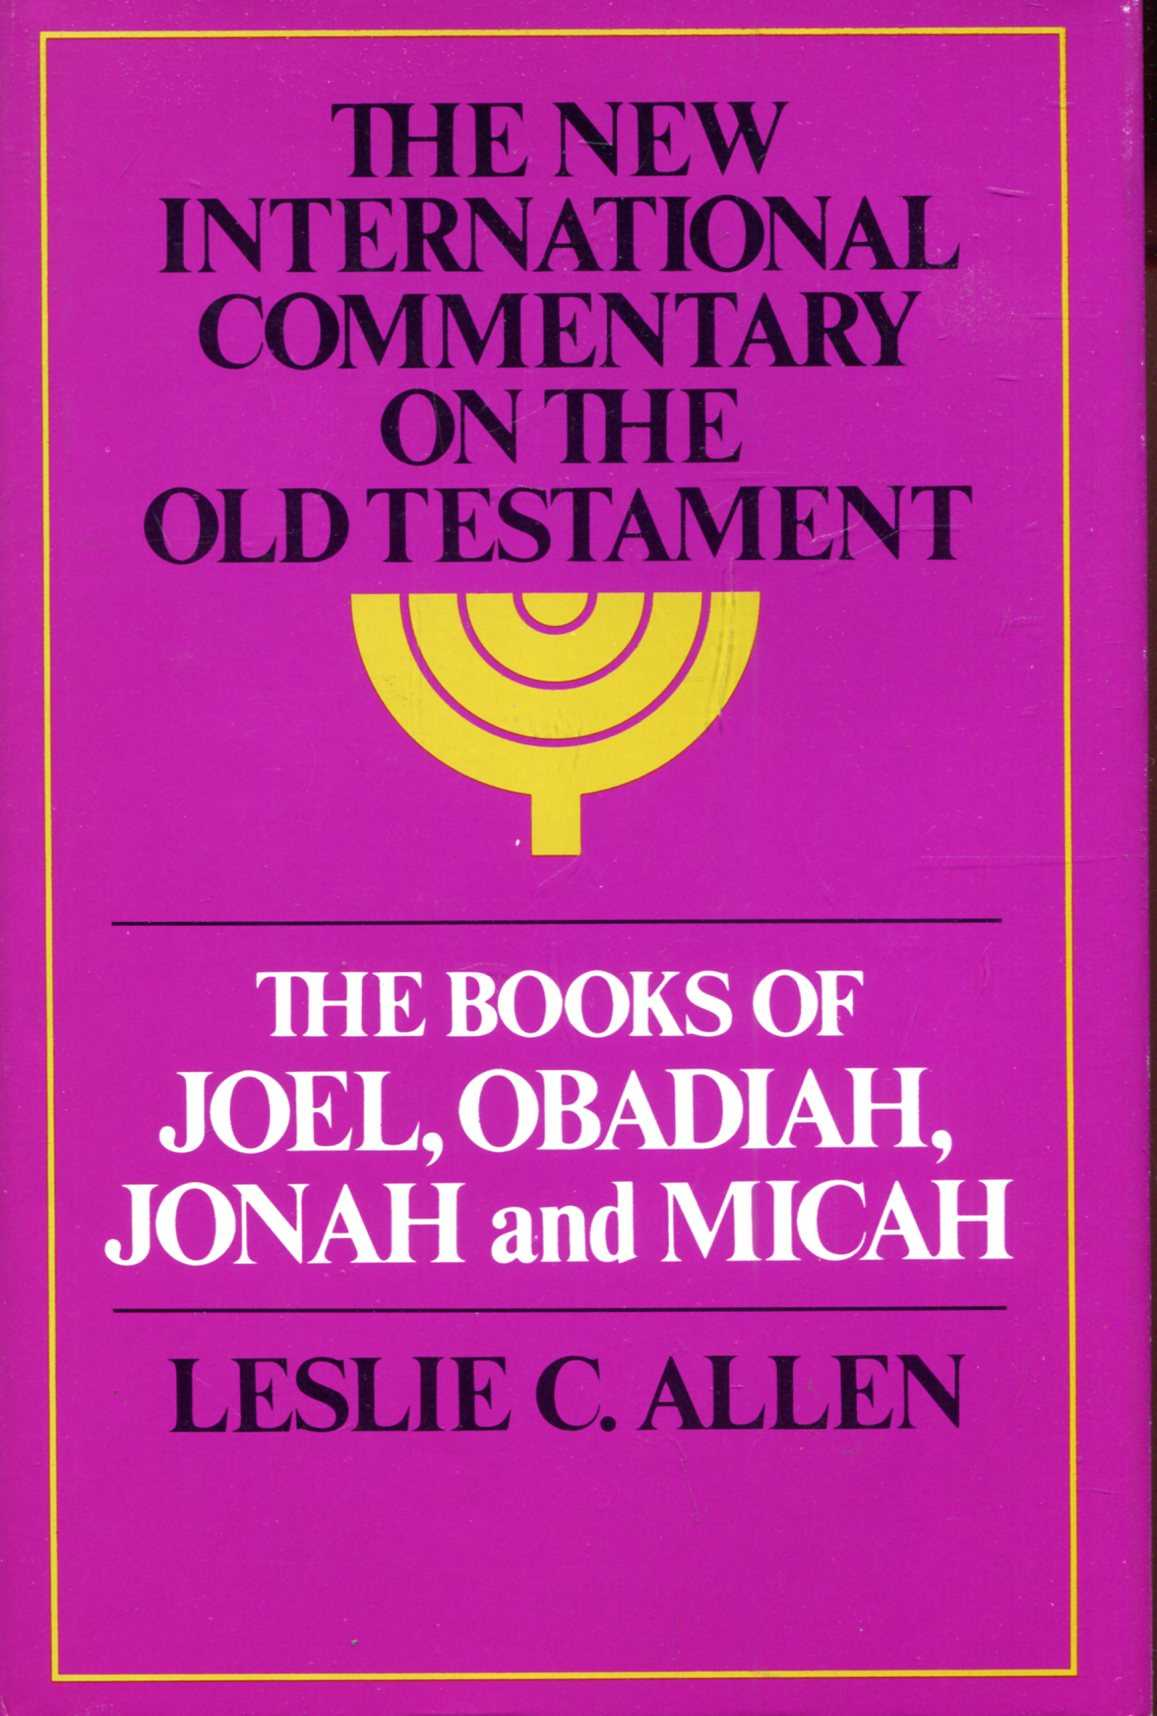 Image for The New International Commentary on the Old Testament : The Books of Joel, Obadiah, Jonah and Micah